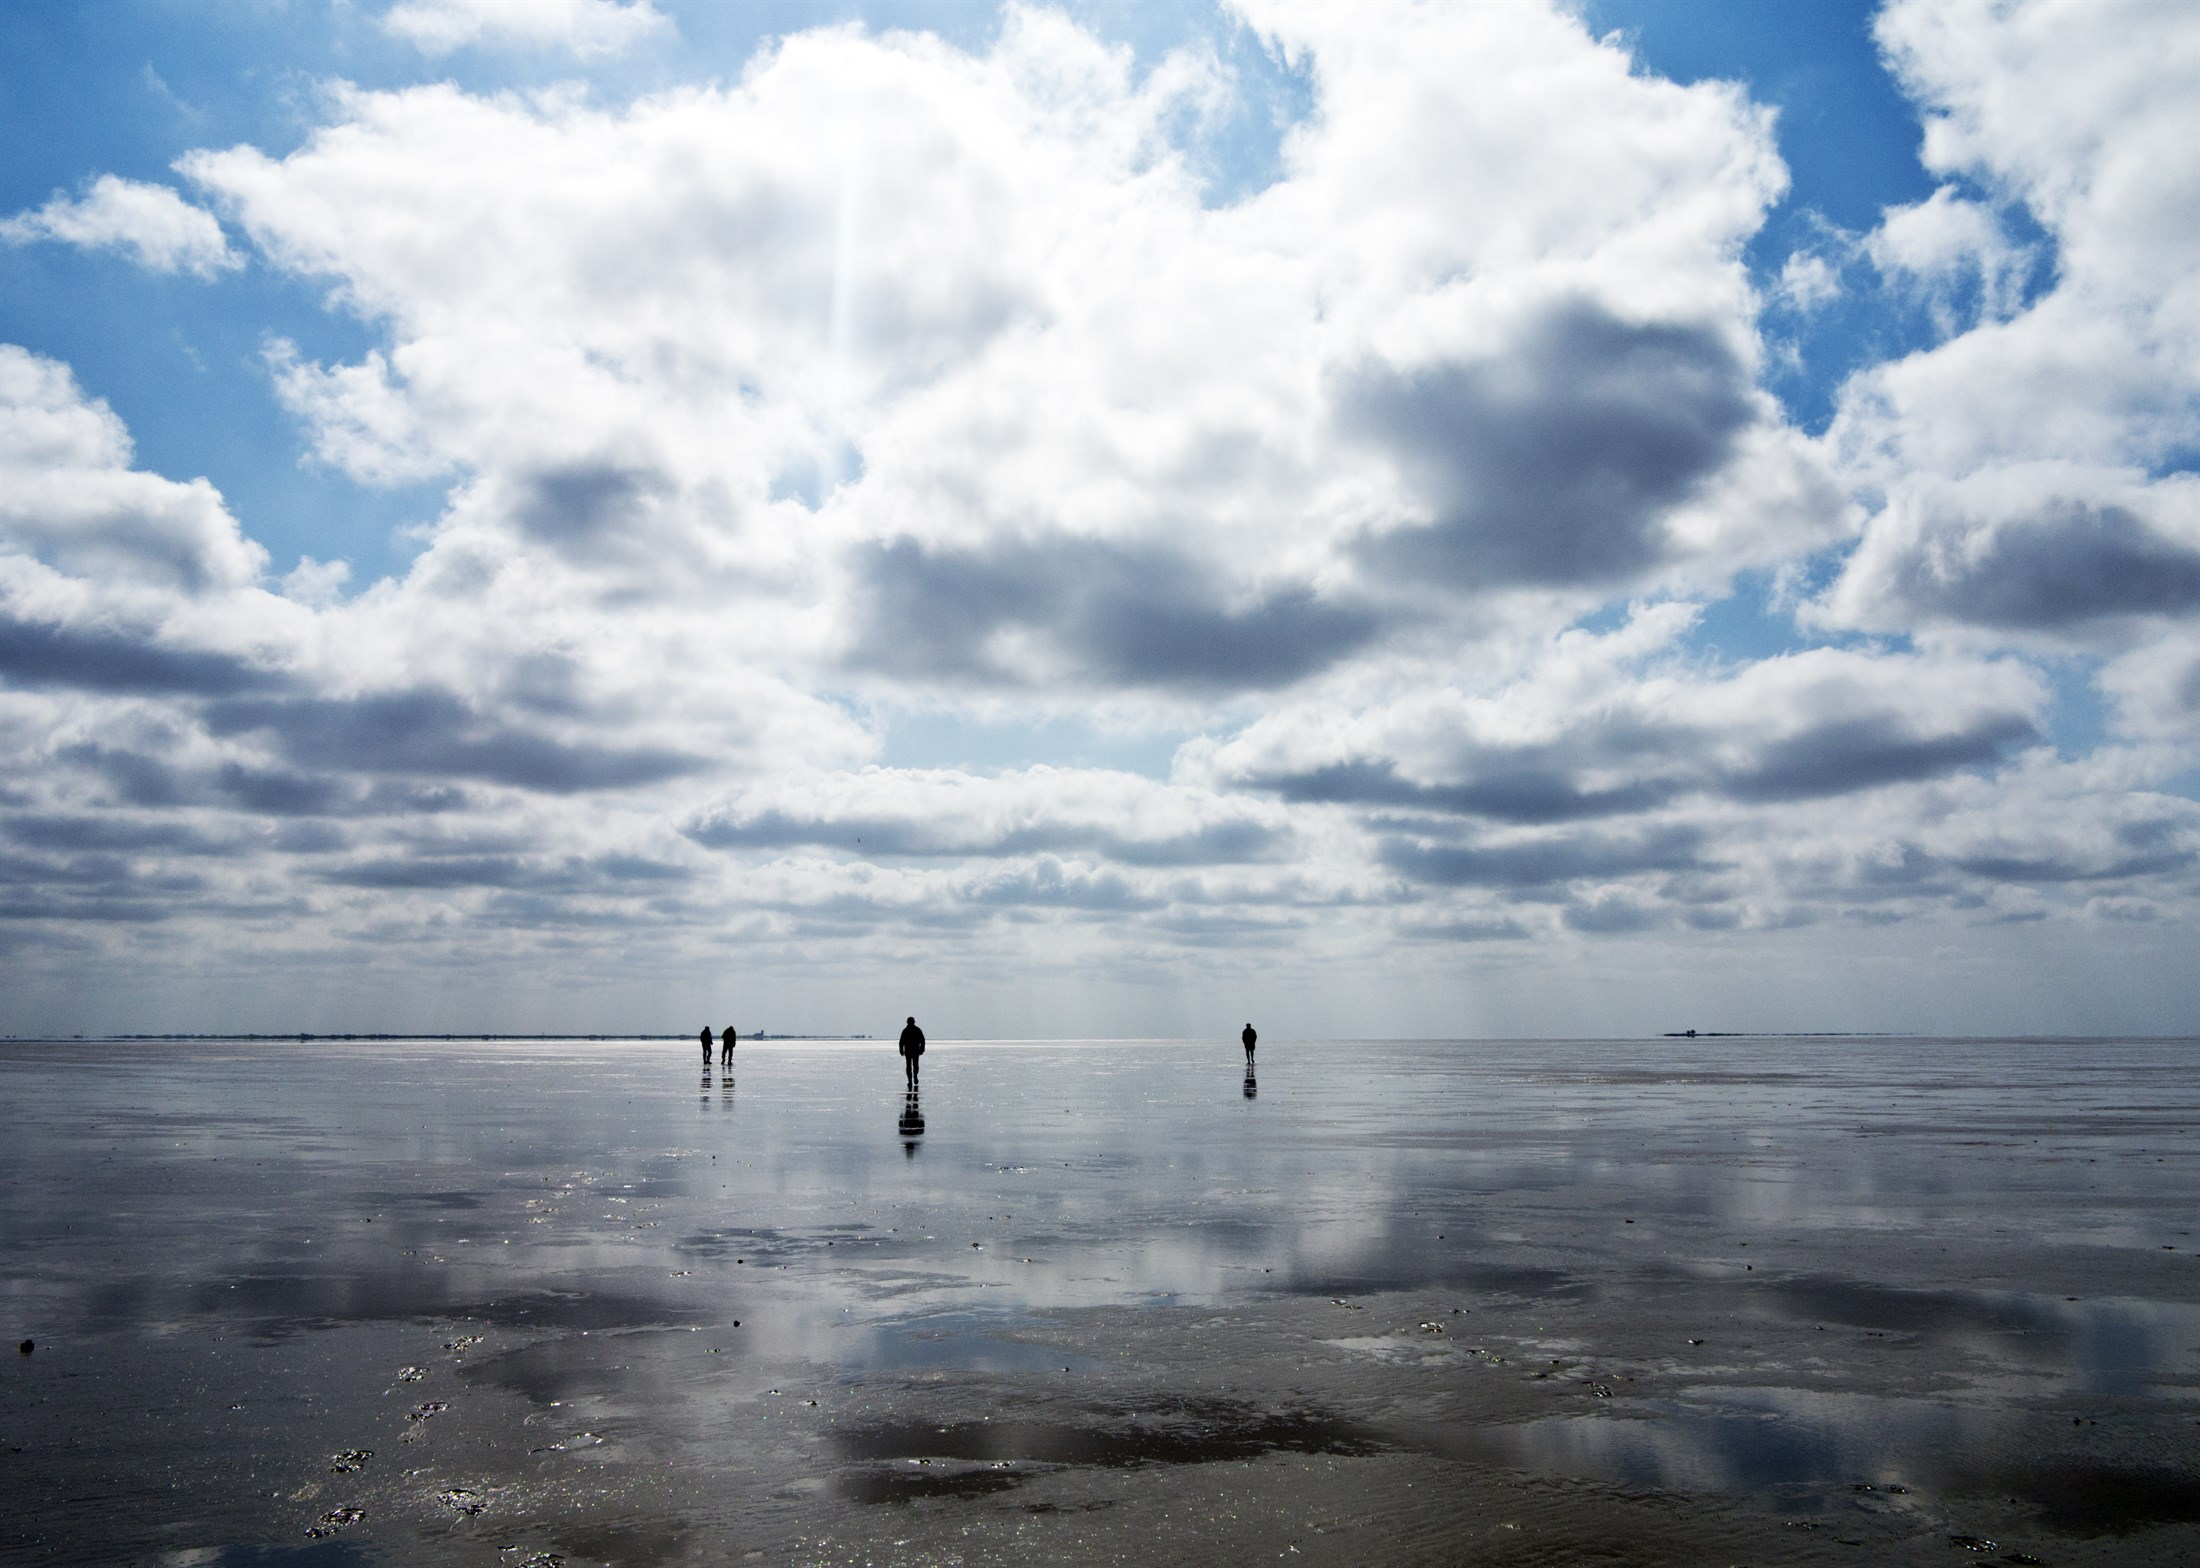 walking-on-the-seabed-from-hallig-hooge-to-japsand-national-park-schleswig-holstein-wadden-sea_15a0-2200x1568px